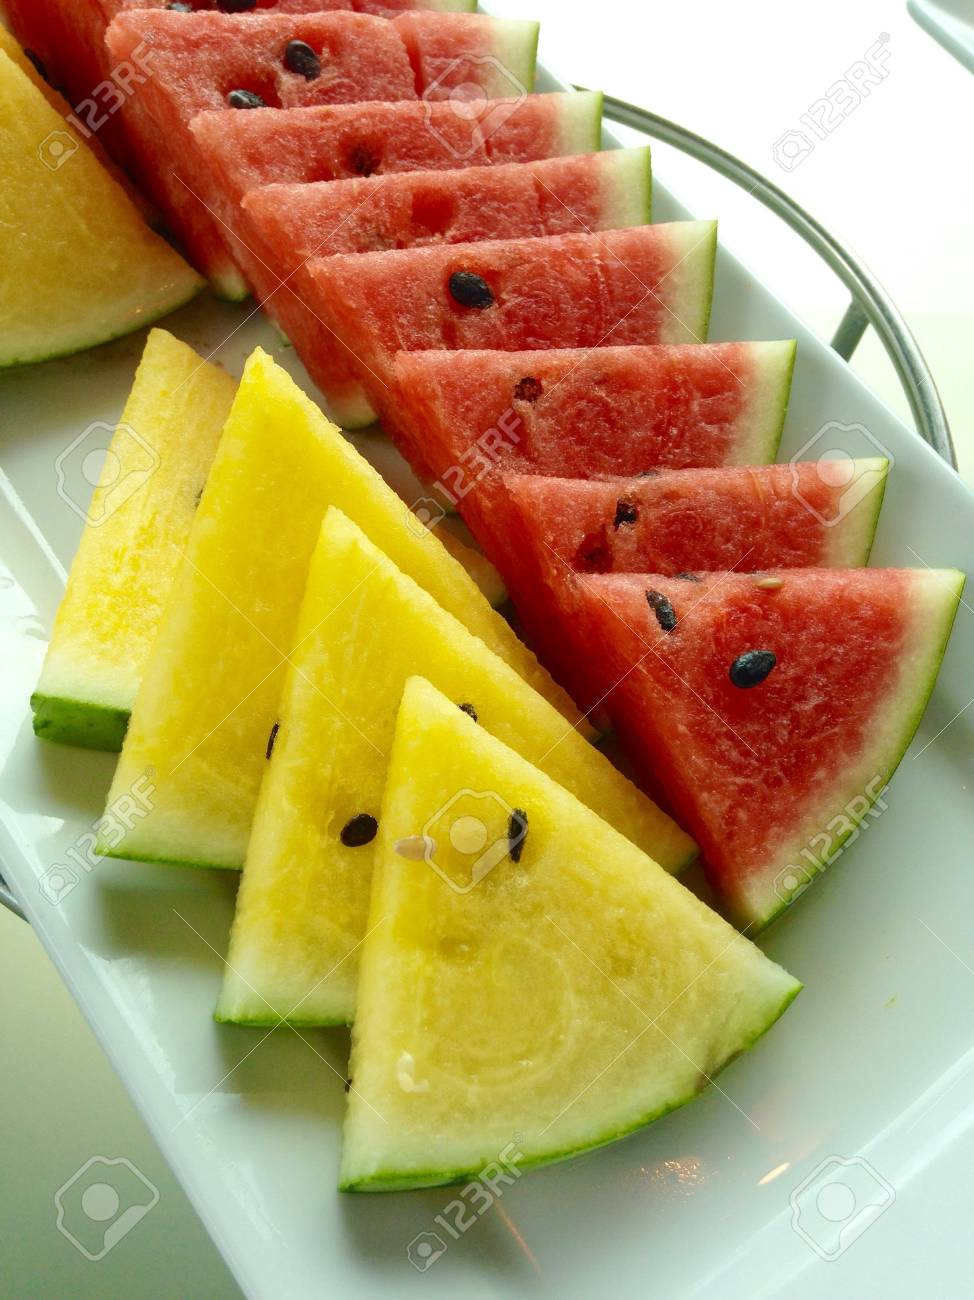 Red And Yellow Watermelon Slice Stock Photo Picture And Royalty Free Image Image 34499419